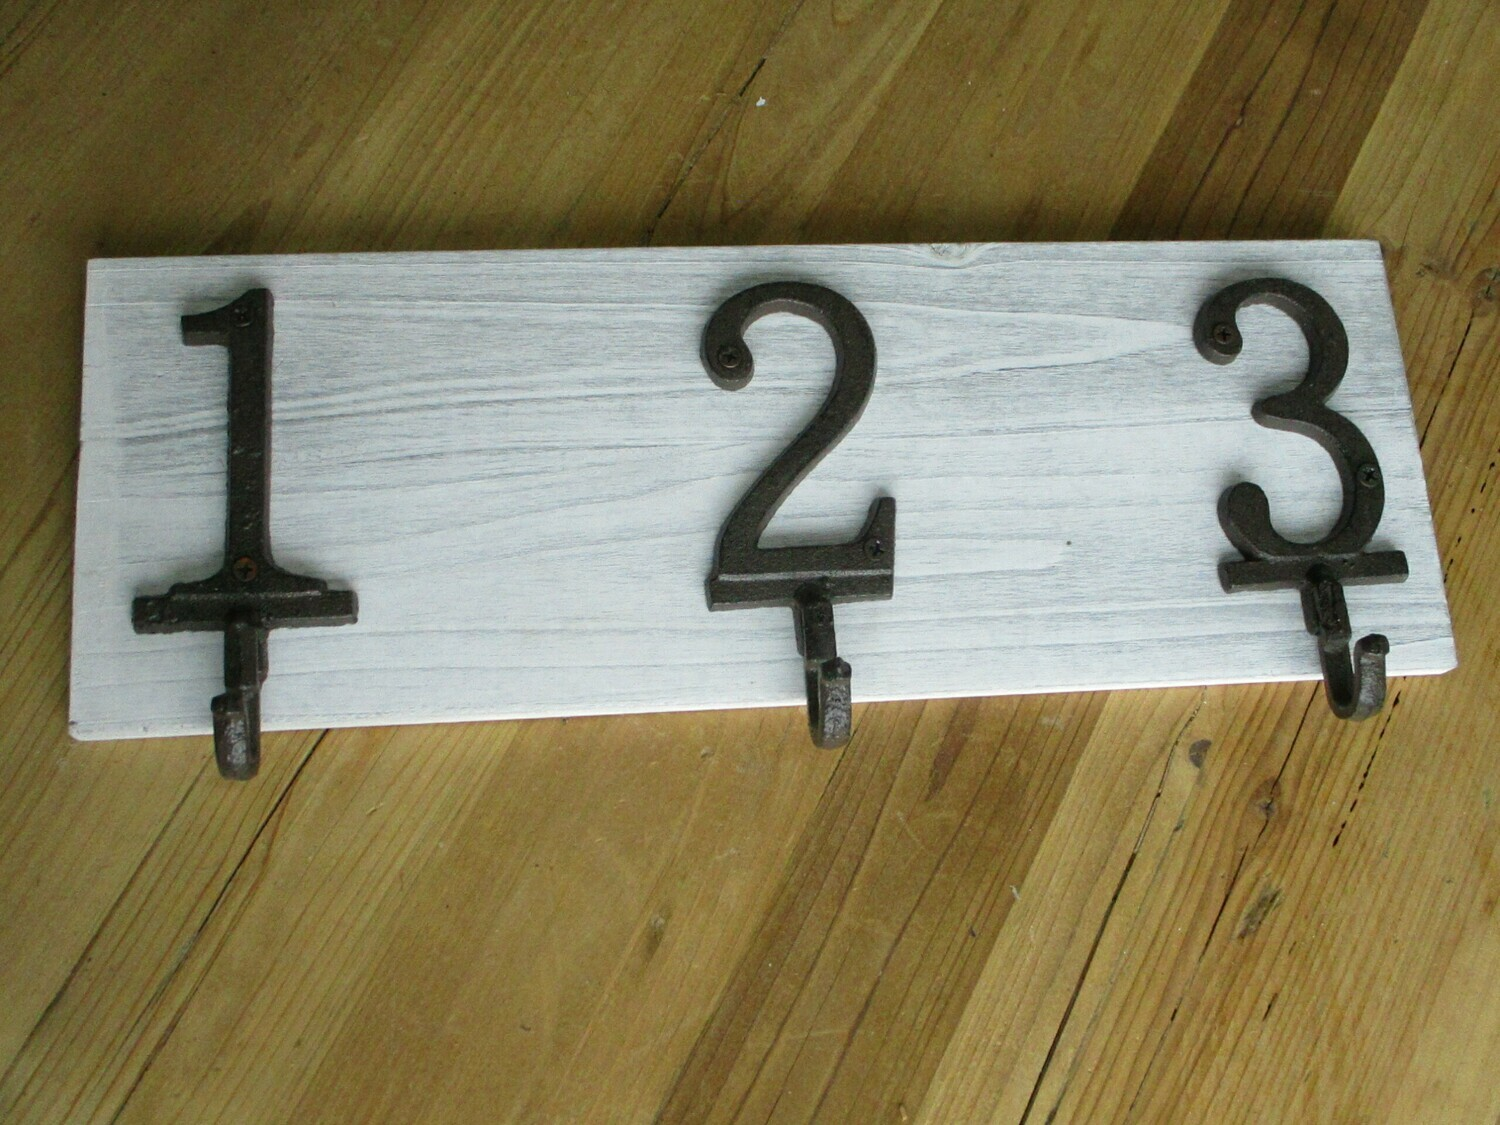 CAST IRON NUMBERS 1,2,3 COAT HOOKS ON DISTRESSED WOOD BACKING